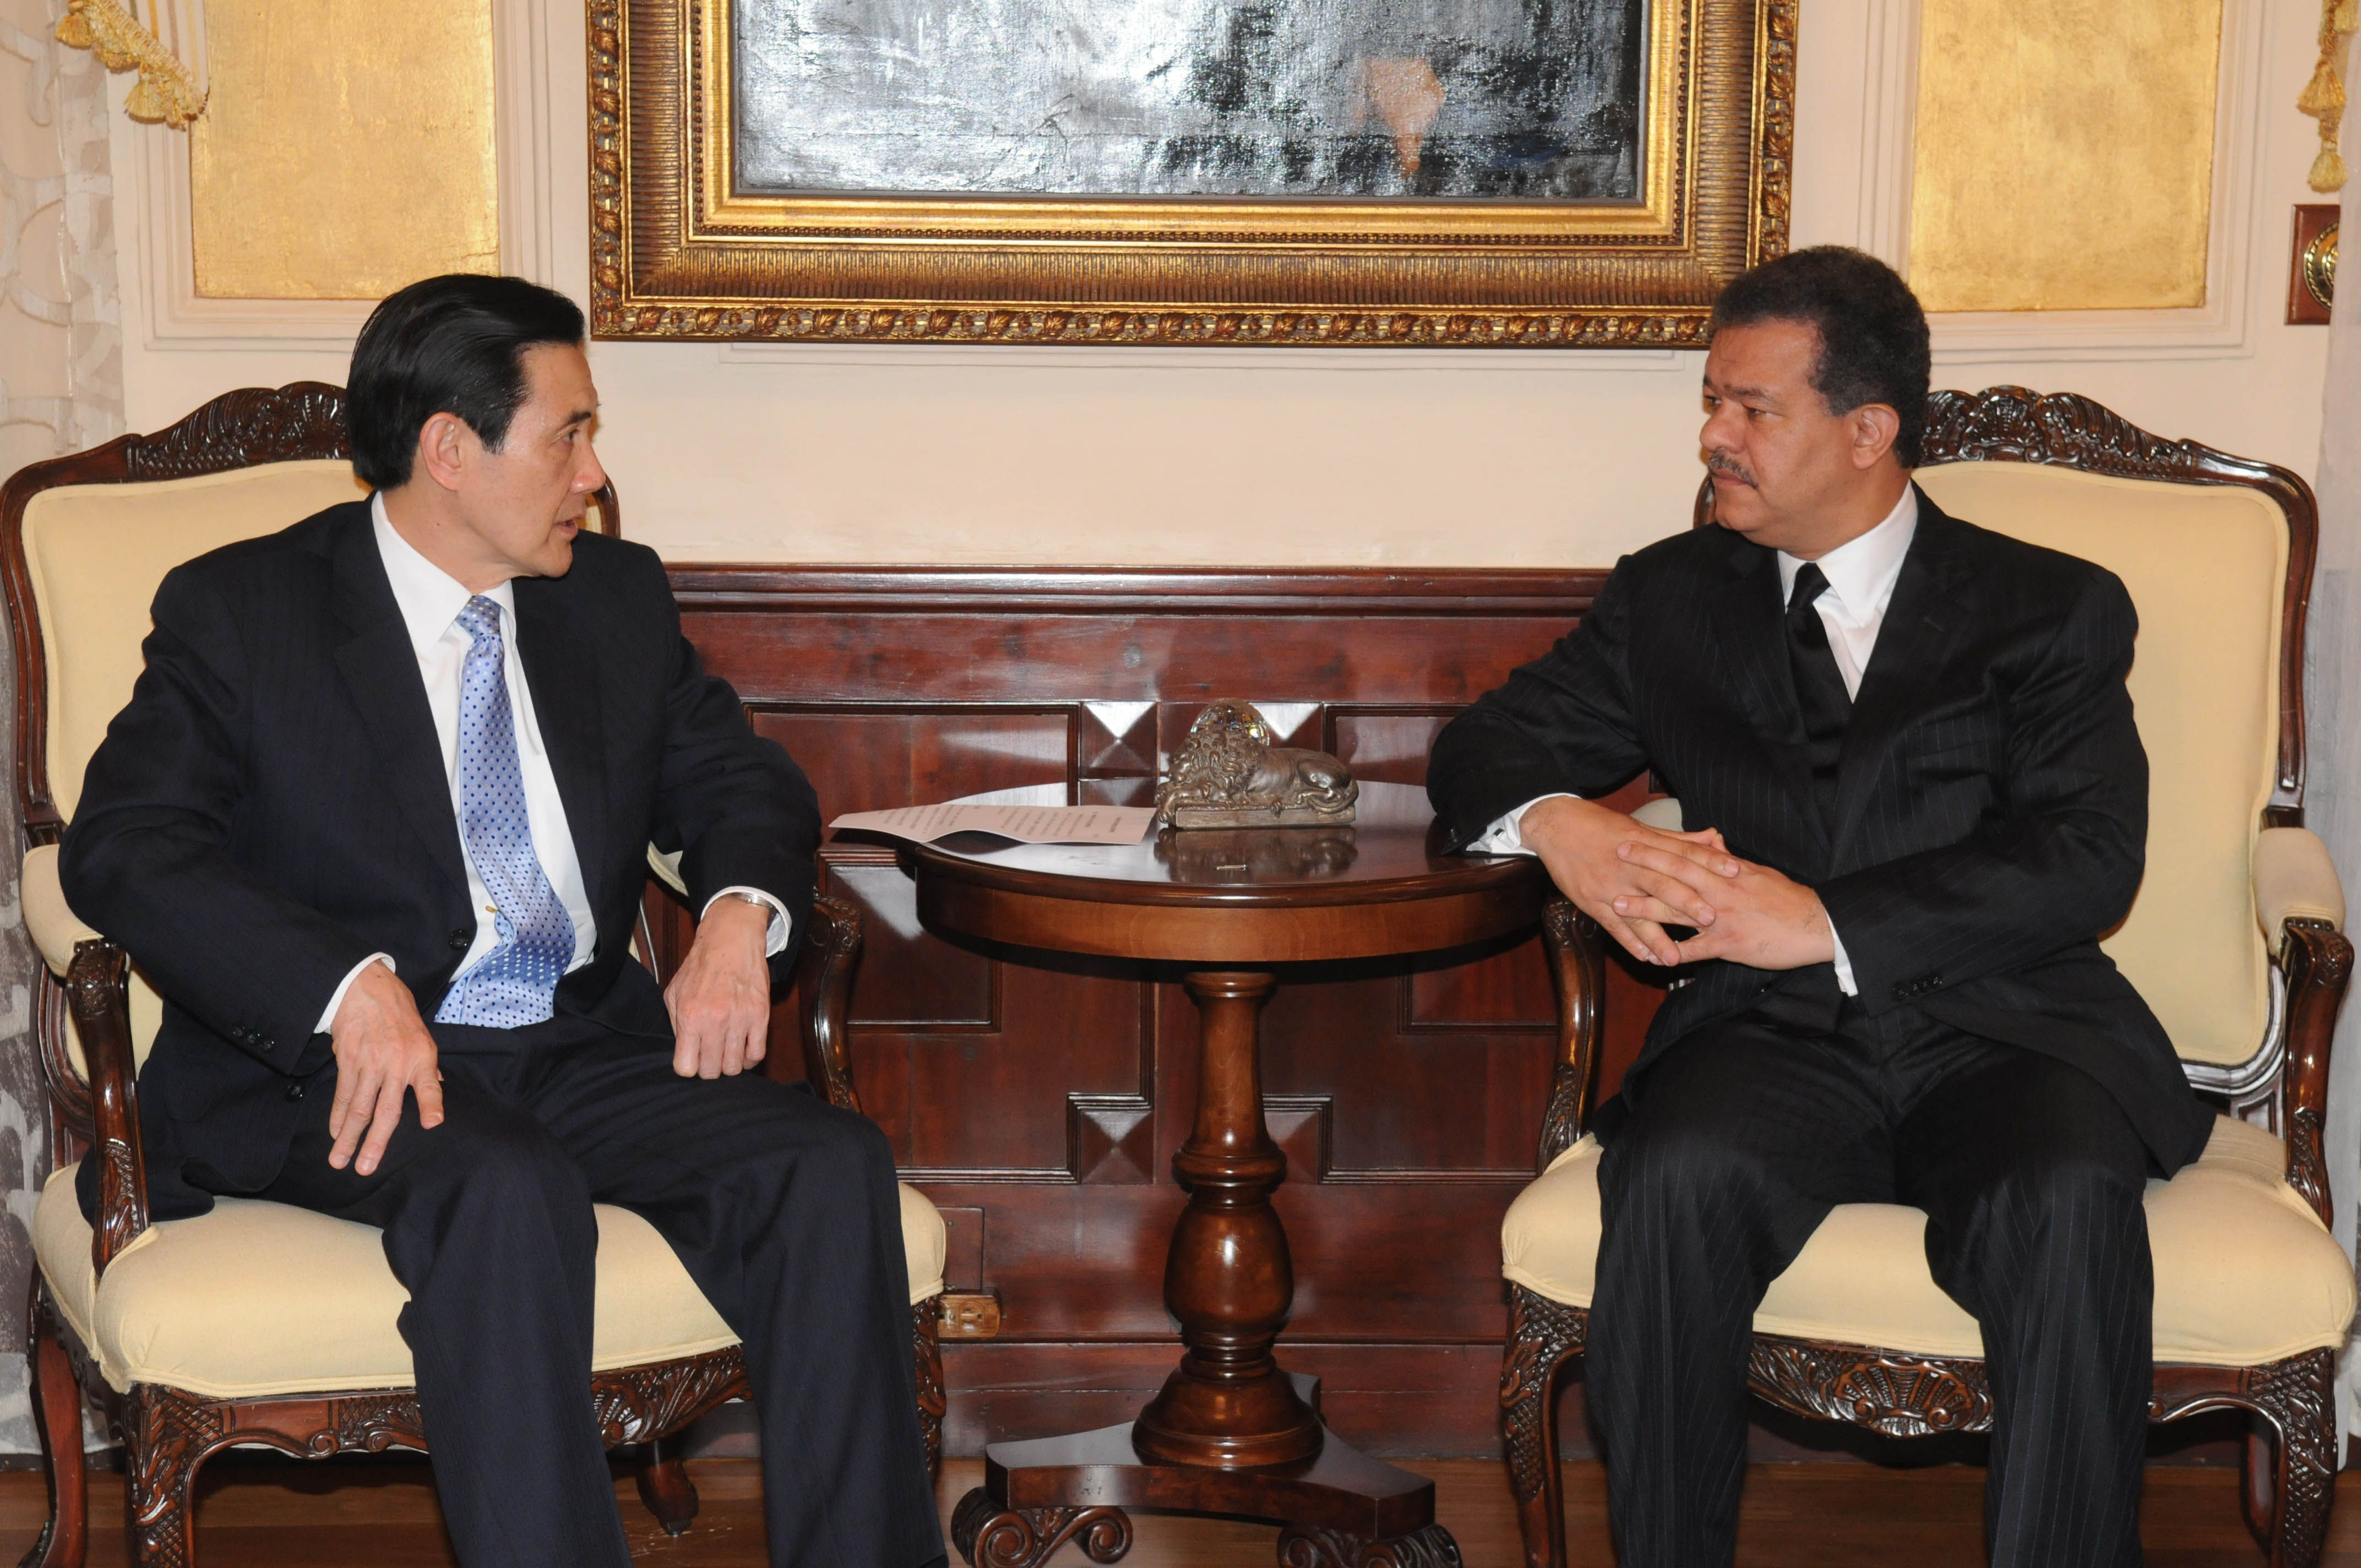 The President of the Dominican Republic, Leonel Fernandez, right, meets with Ma Ying-jeou, President of Taiwan at the presidential palace in Santo Dom...